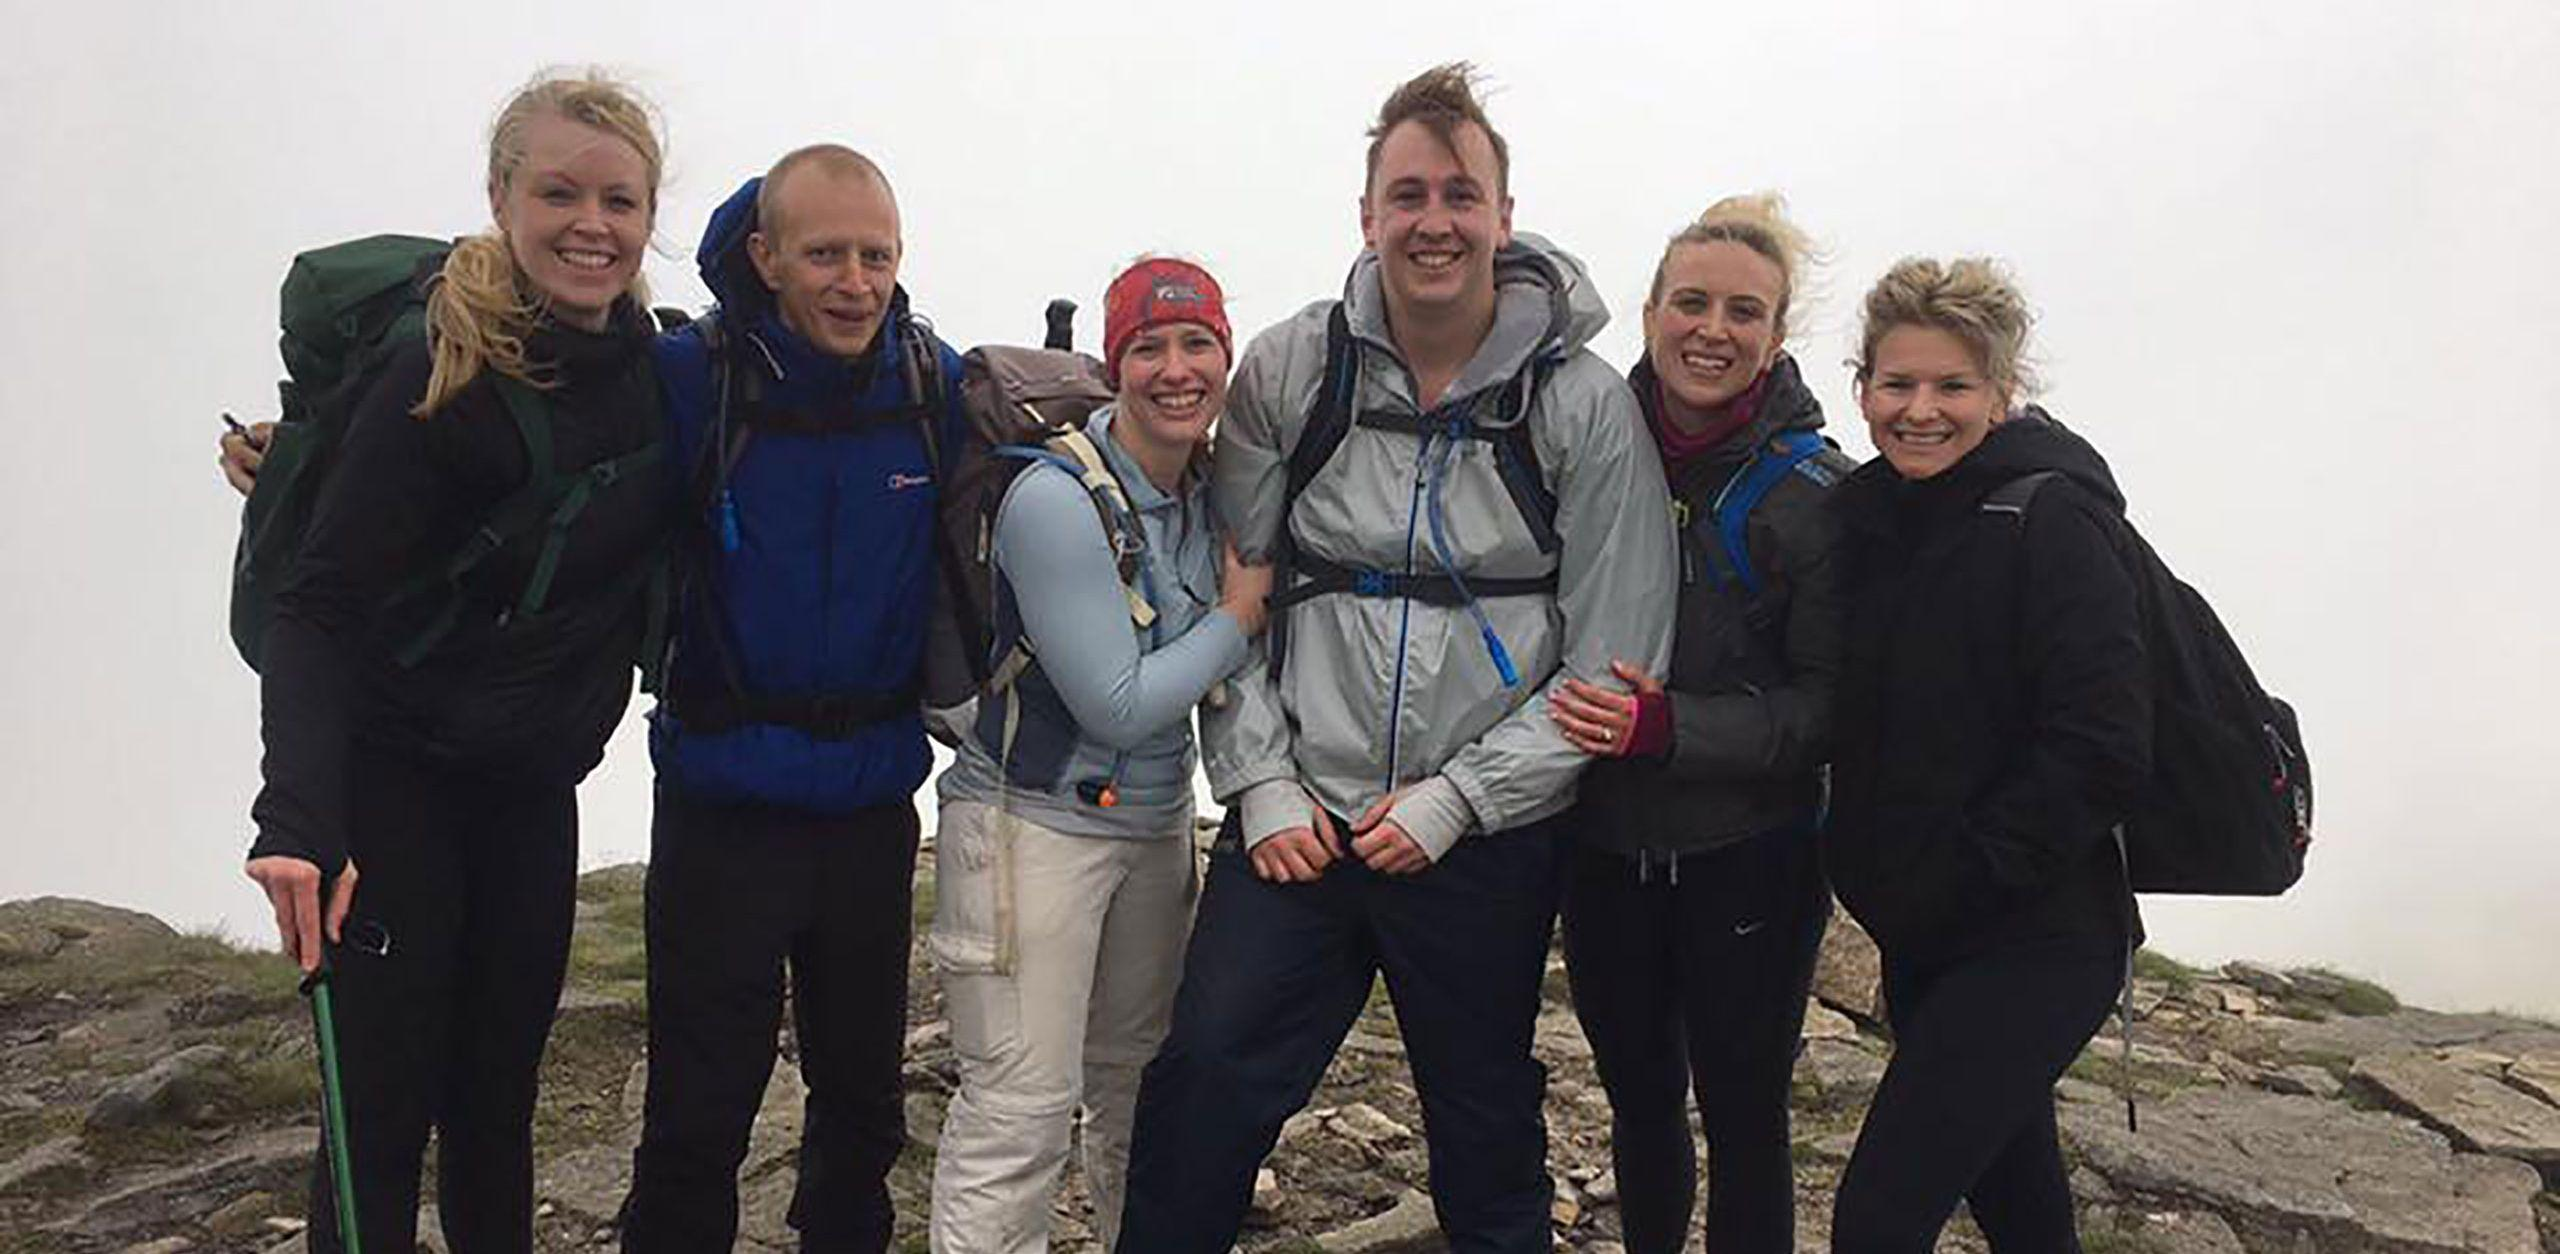 six D2 Rail staff members up a mountain